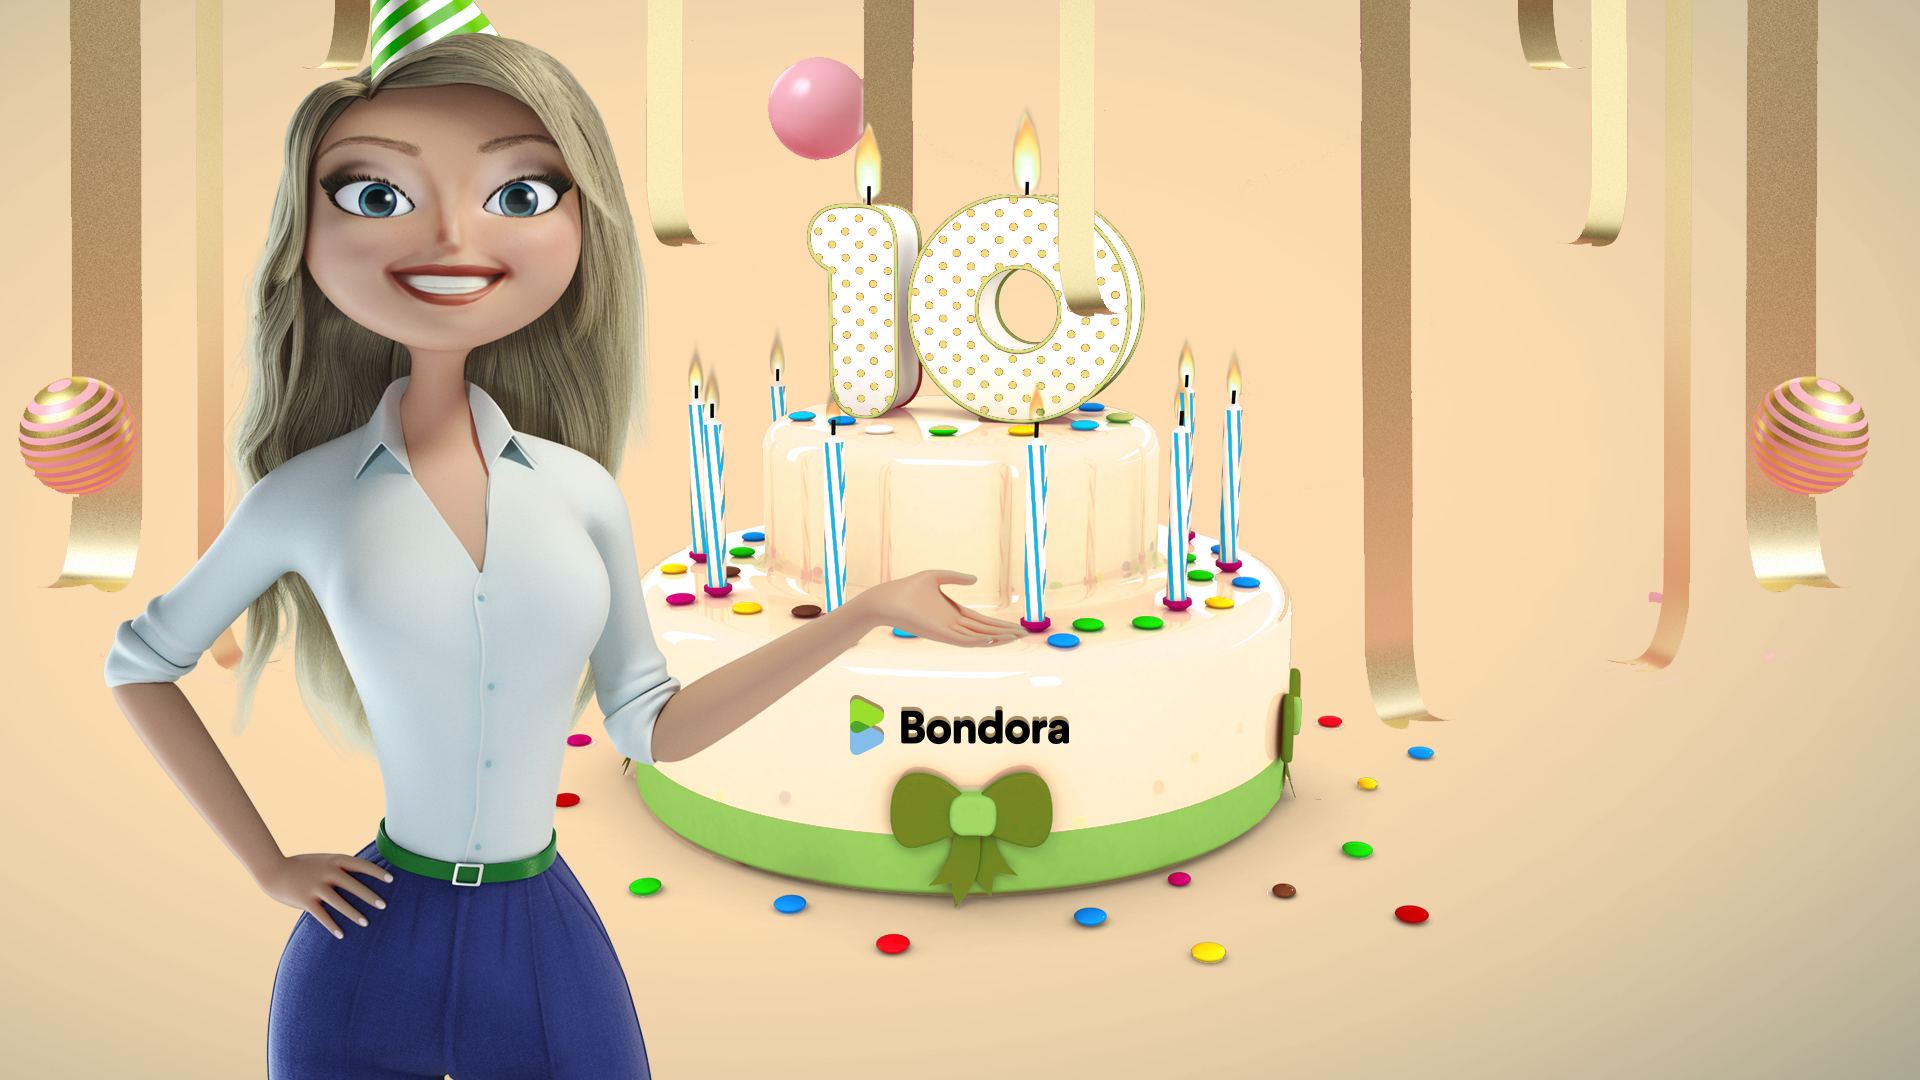 Bondora 10 birthday